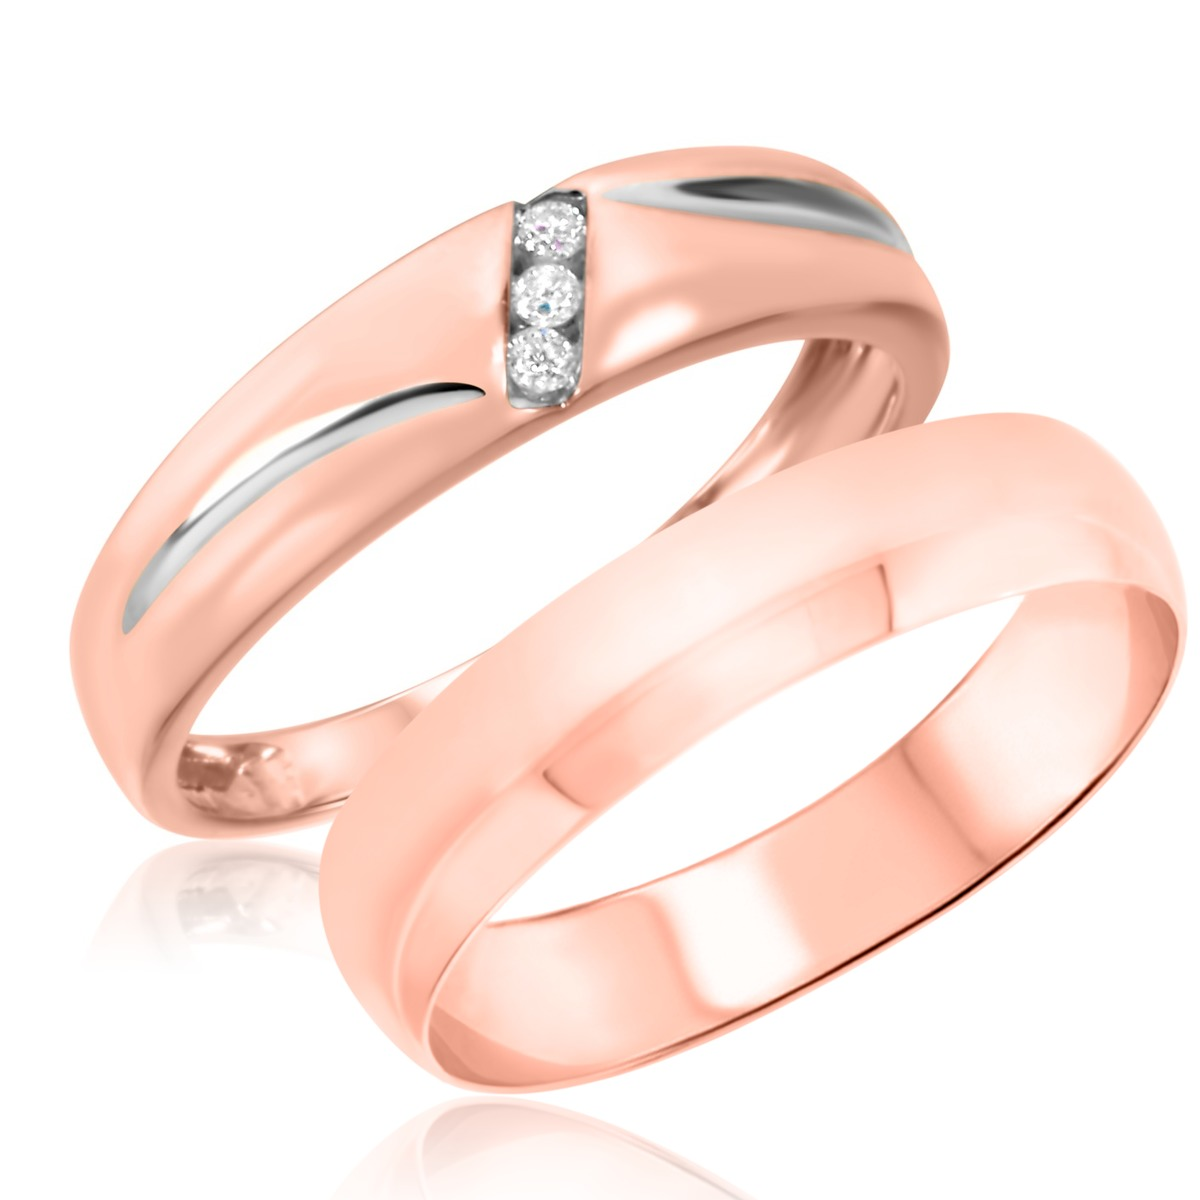 1/25 Carat T.W. Round Cut Diamond His and Hers Wedding Band Set 10K Rose Gold